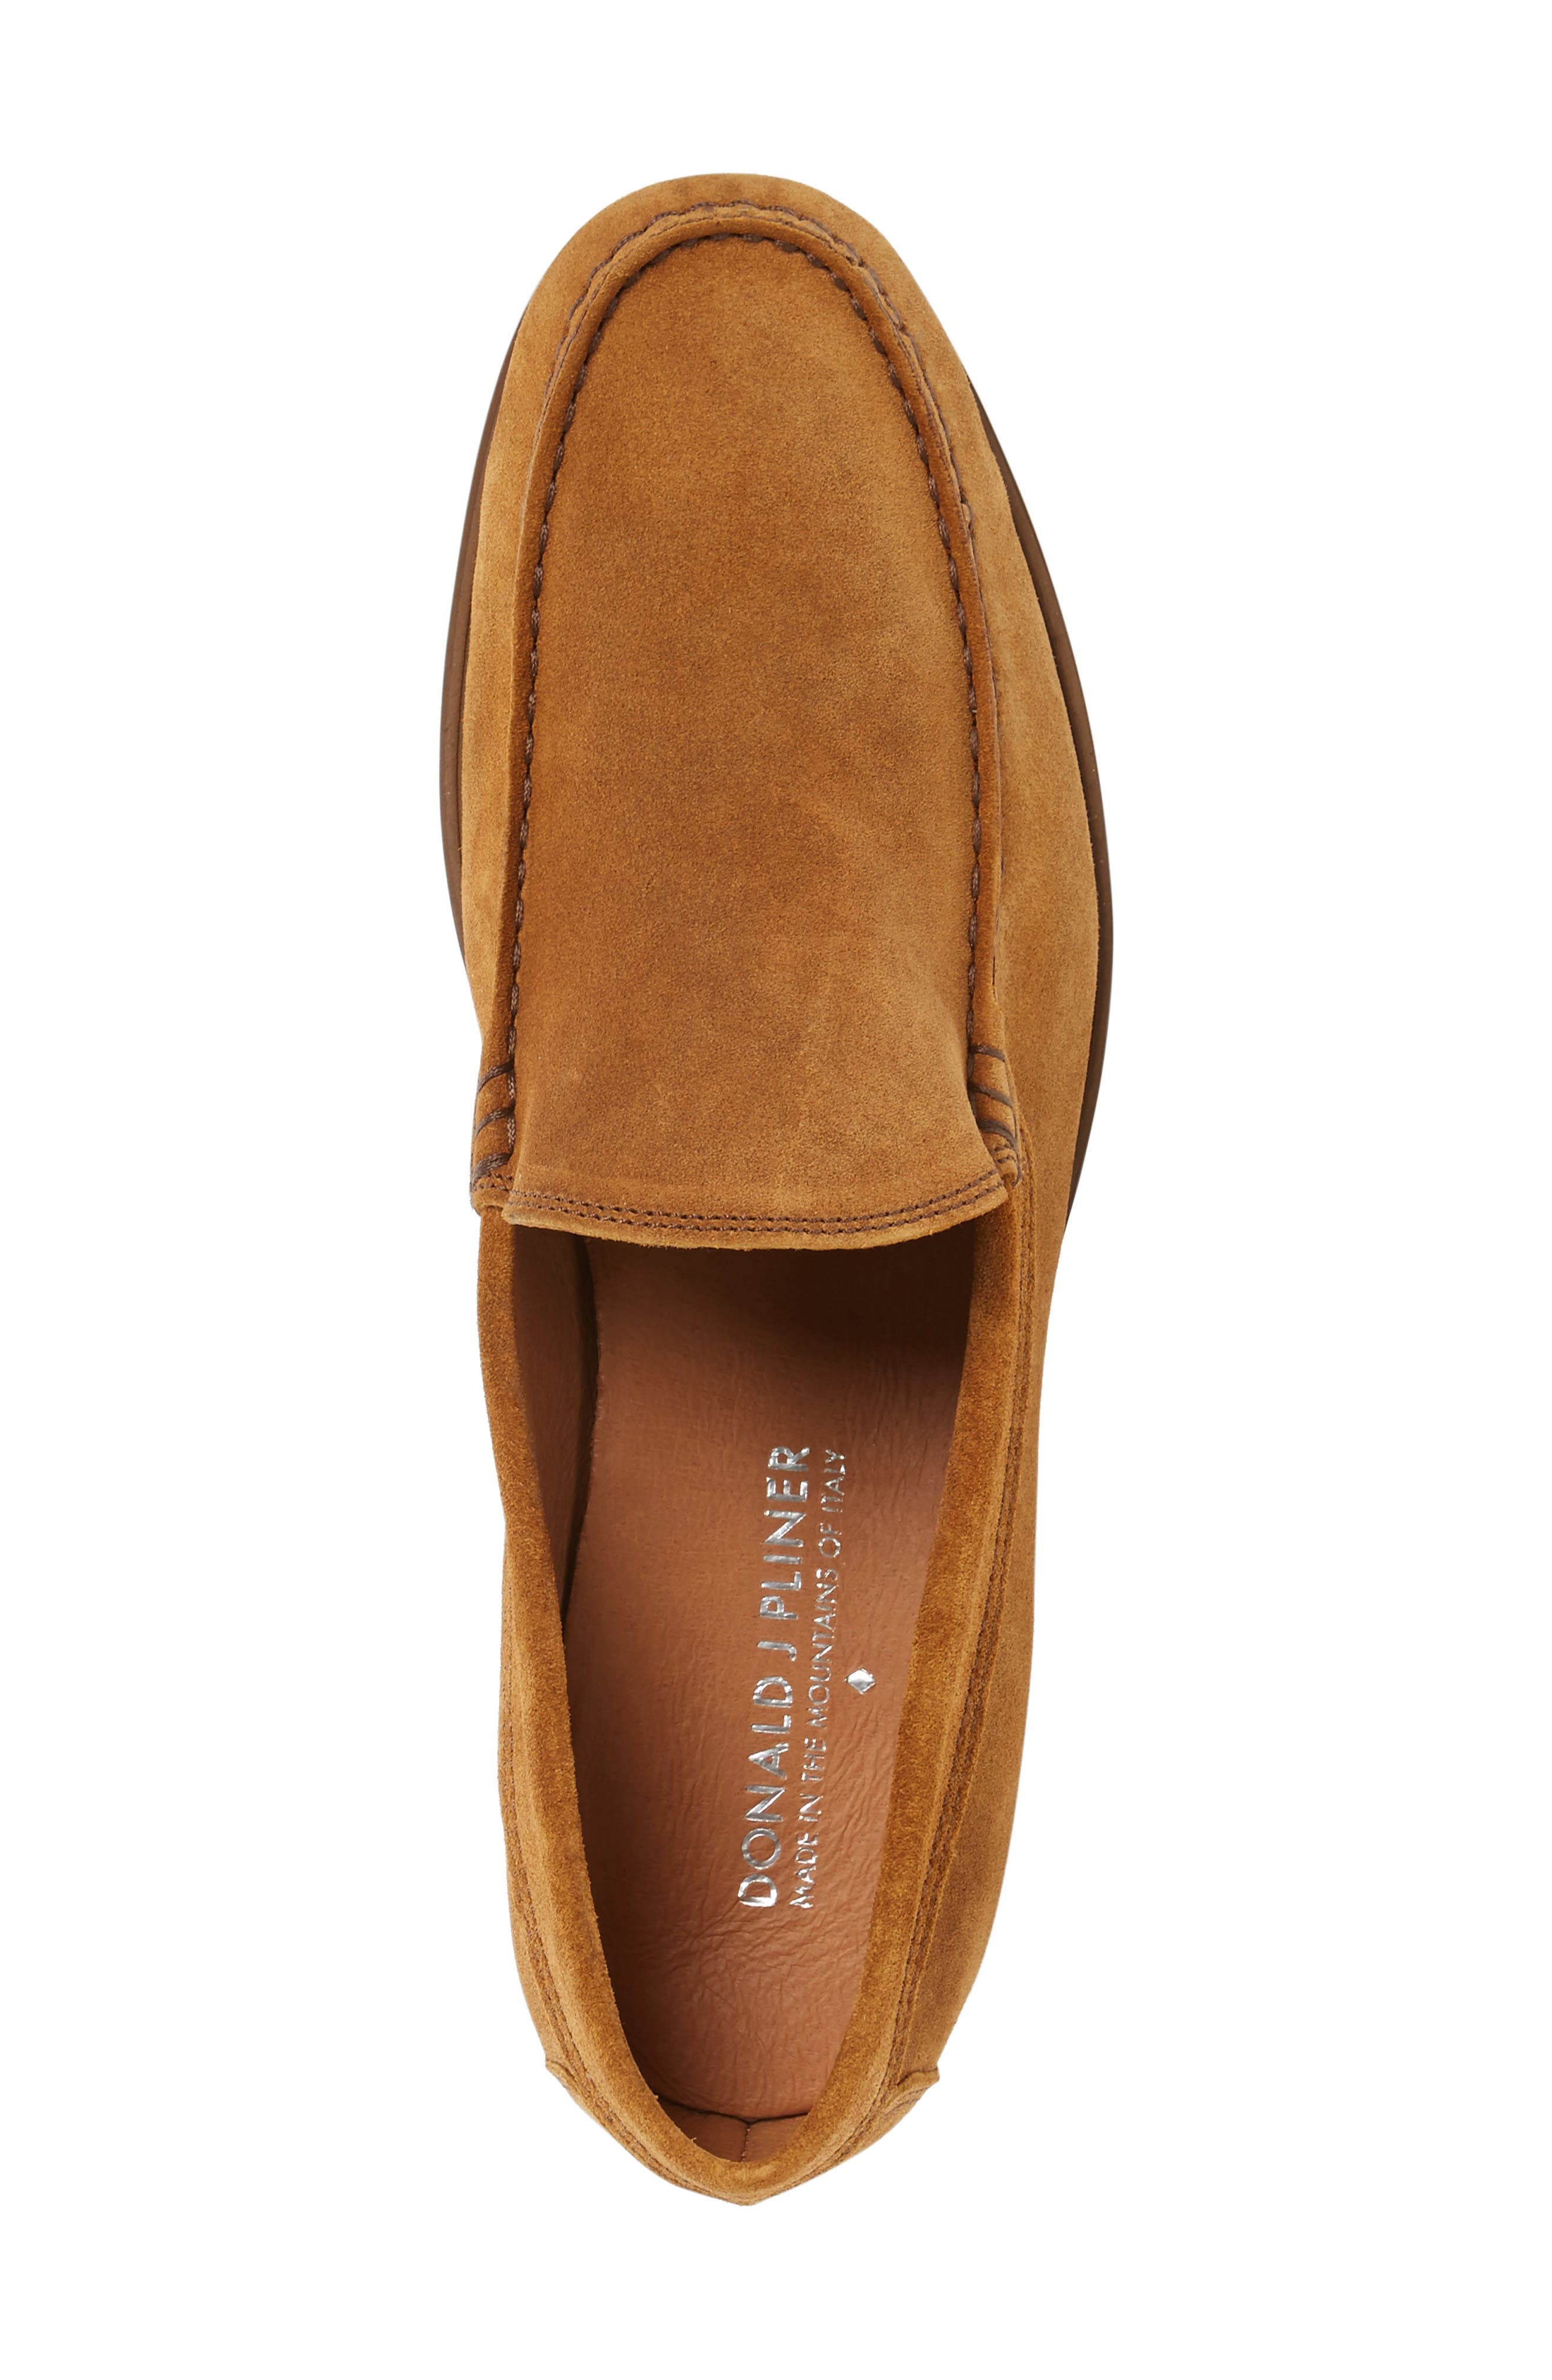 Donald J Pliner 'Nate' Loafer,                             Alternate thumbnail 13, color,